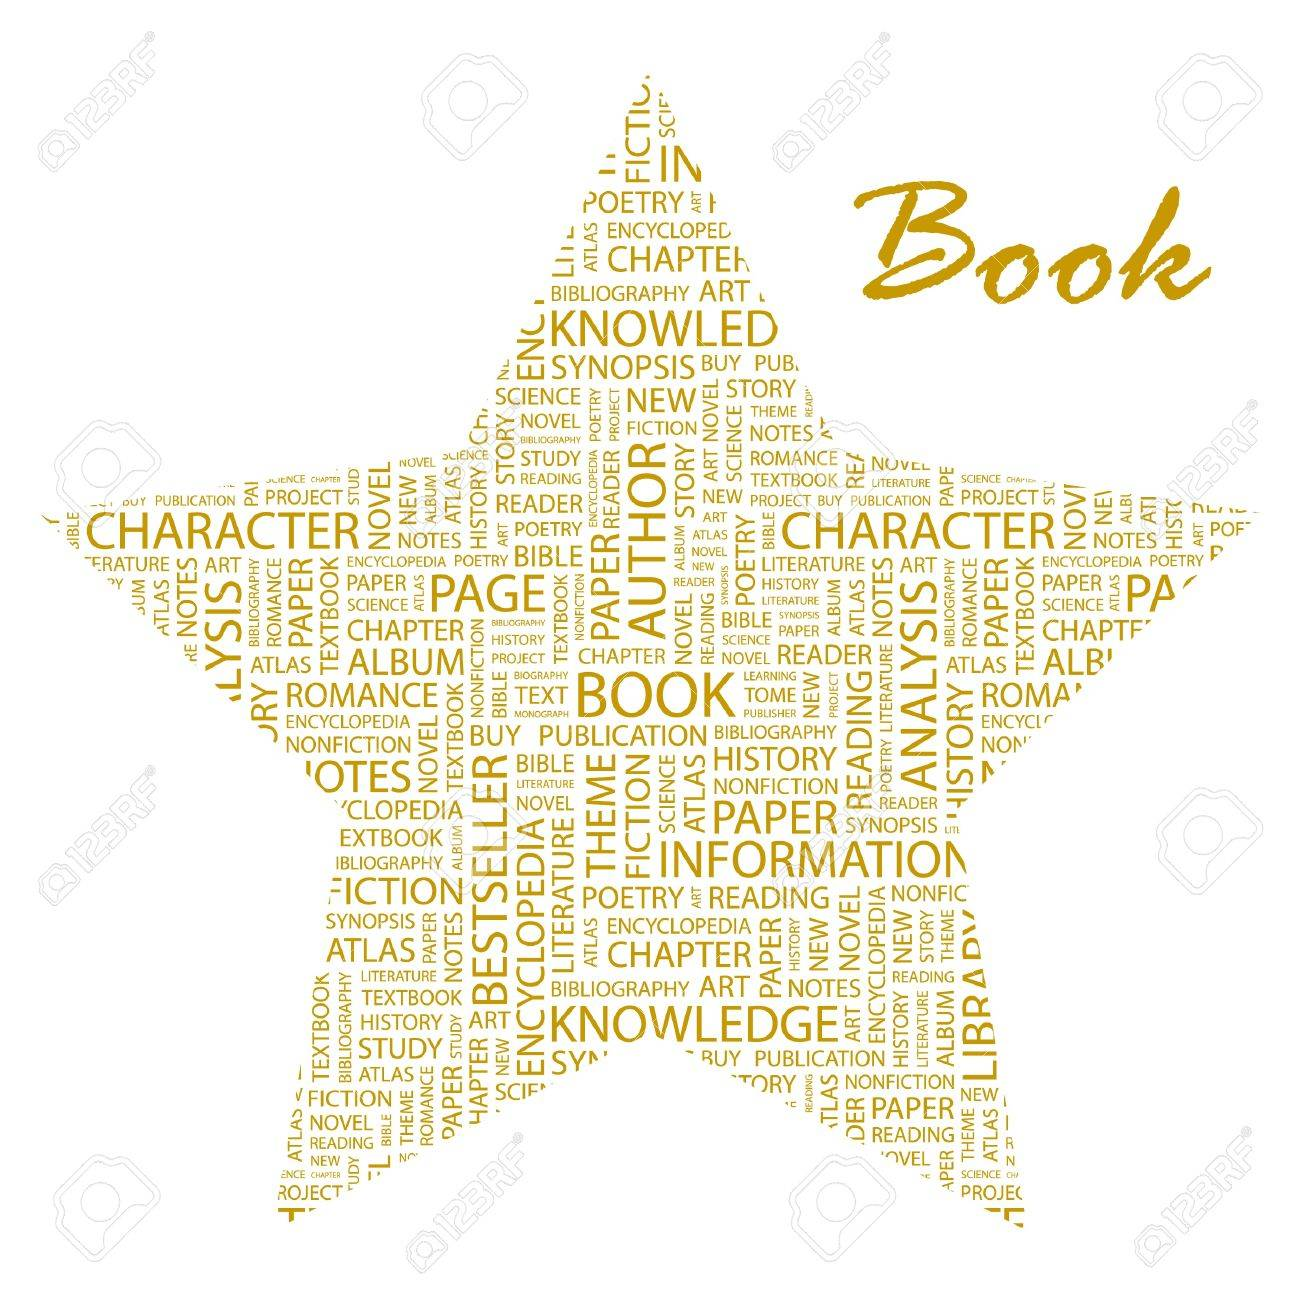 BOOK. Word collage on white background. Vector illustration. Illustration with different association terms. Stock Vector - 9409227